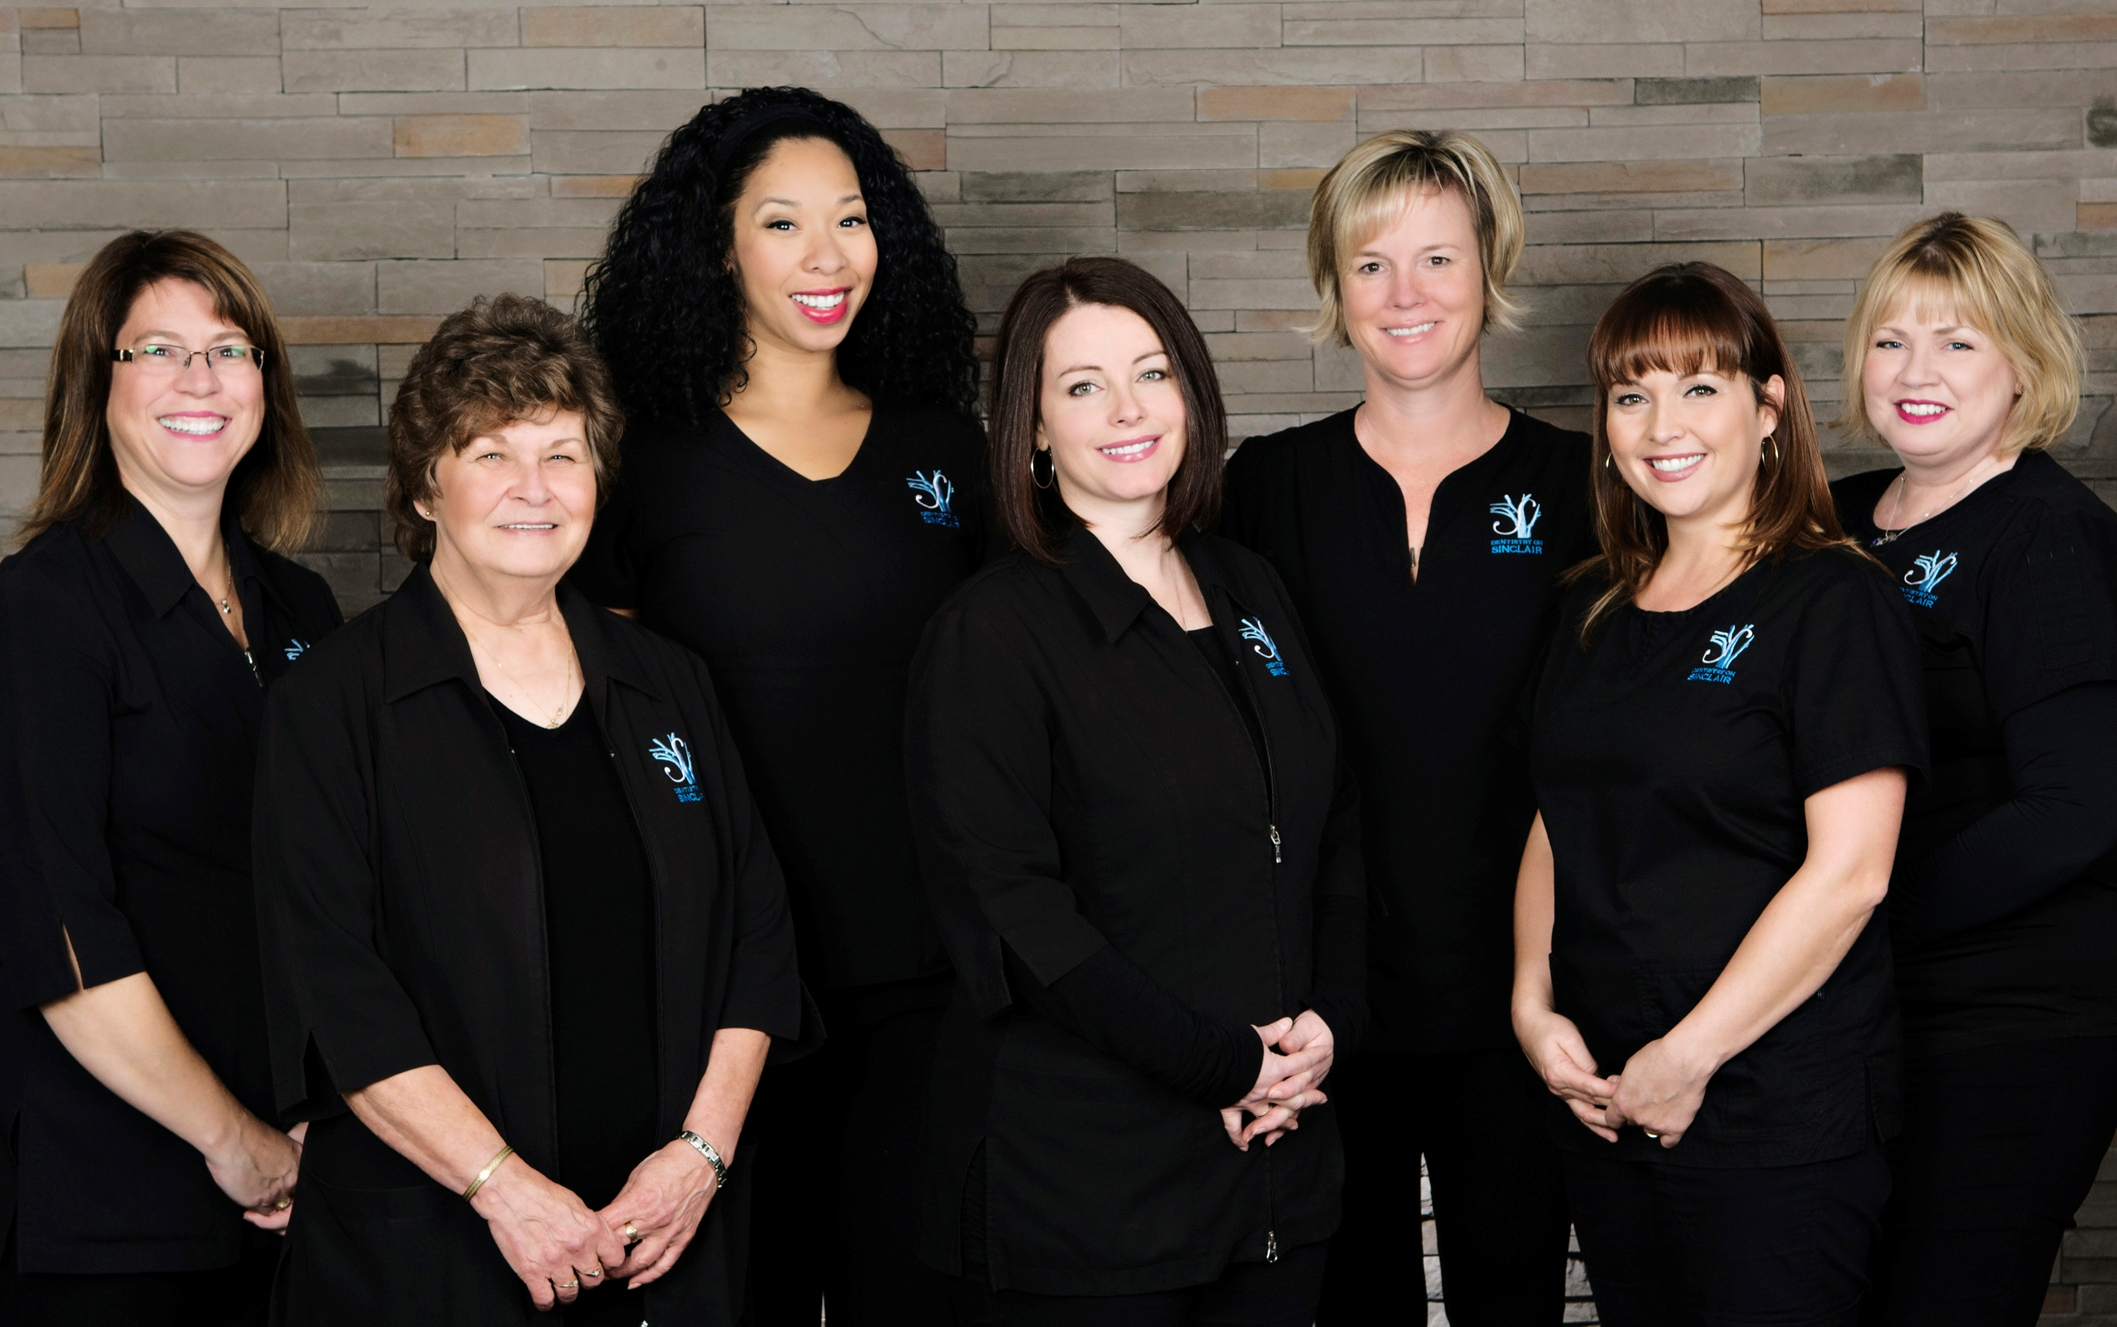 OUR ADMIN TEAM: Carolyne, Carole, Char, Lisa, Nancy, Marie-Claire, Holly